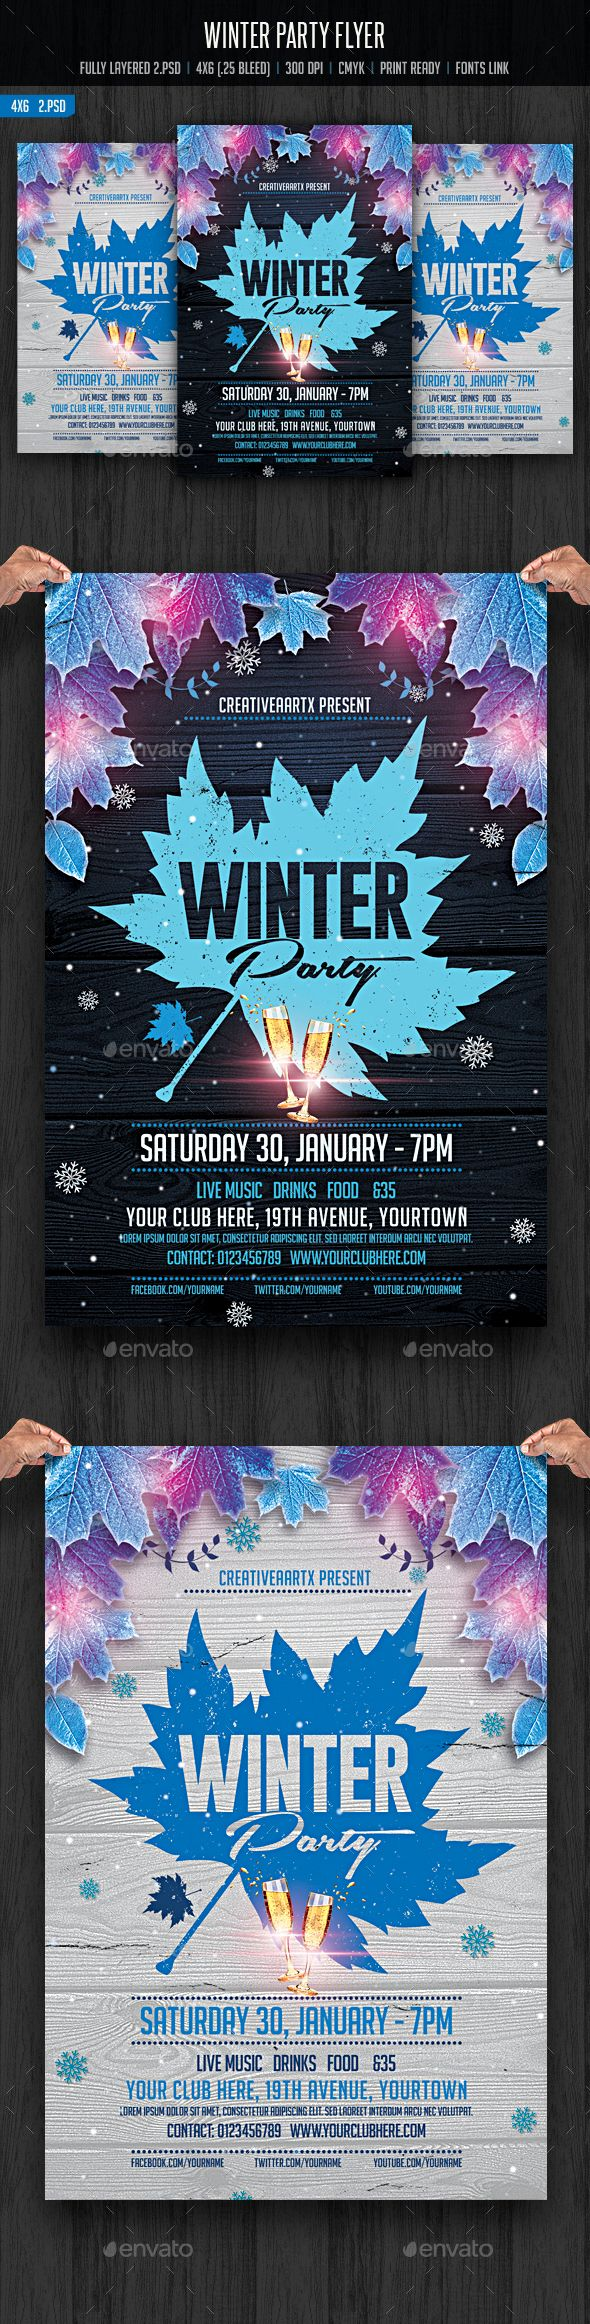 17 best images about party design flyers dj party winter party flyer